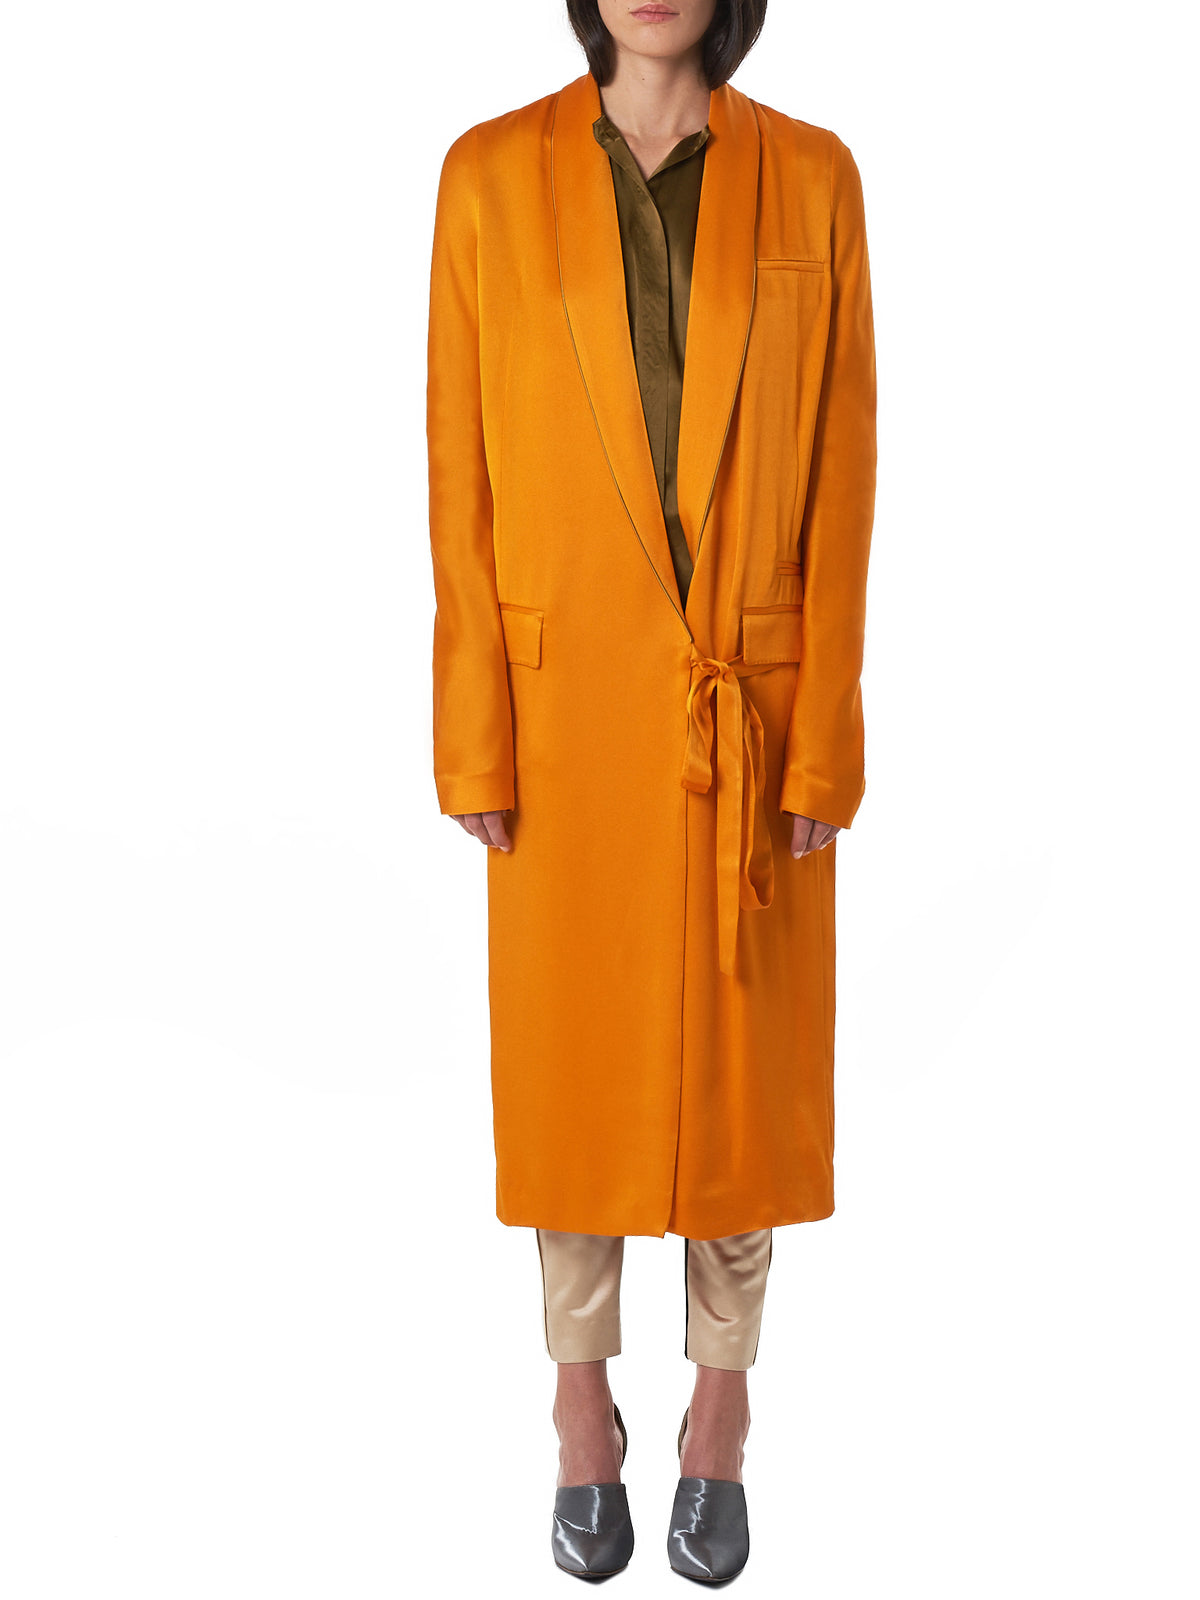 Haider Ackermann Orange Coat - Hlorenzo Front